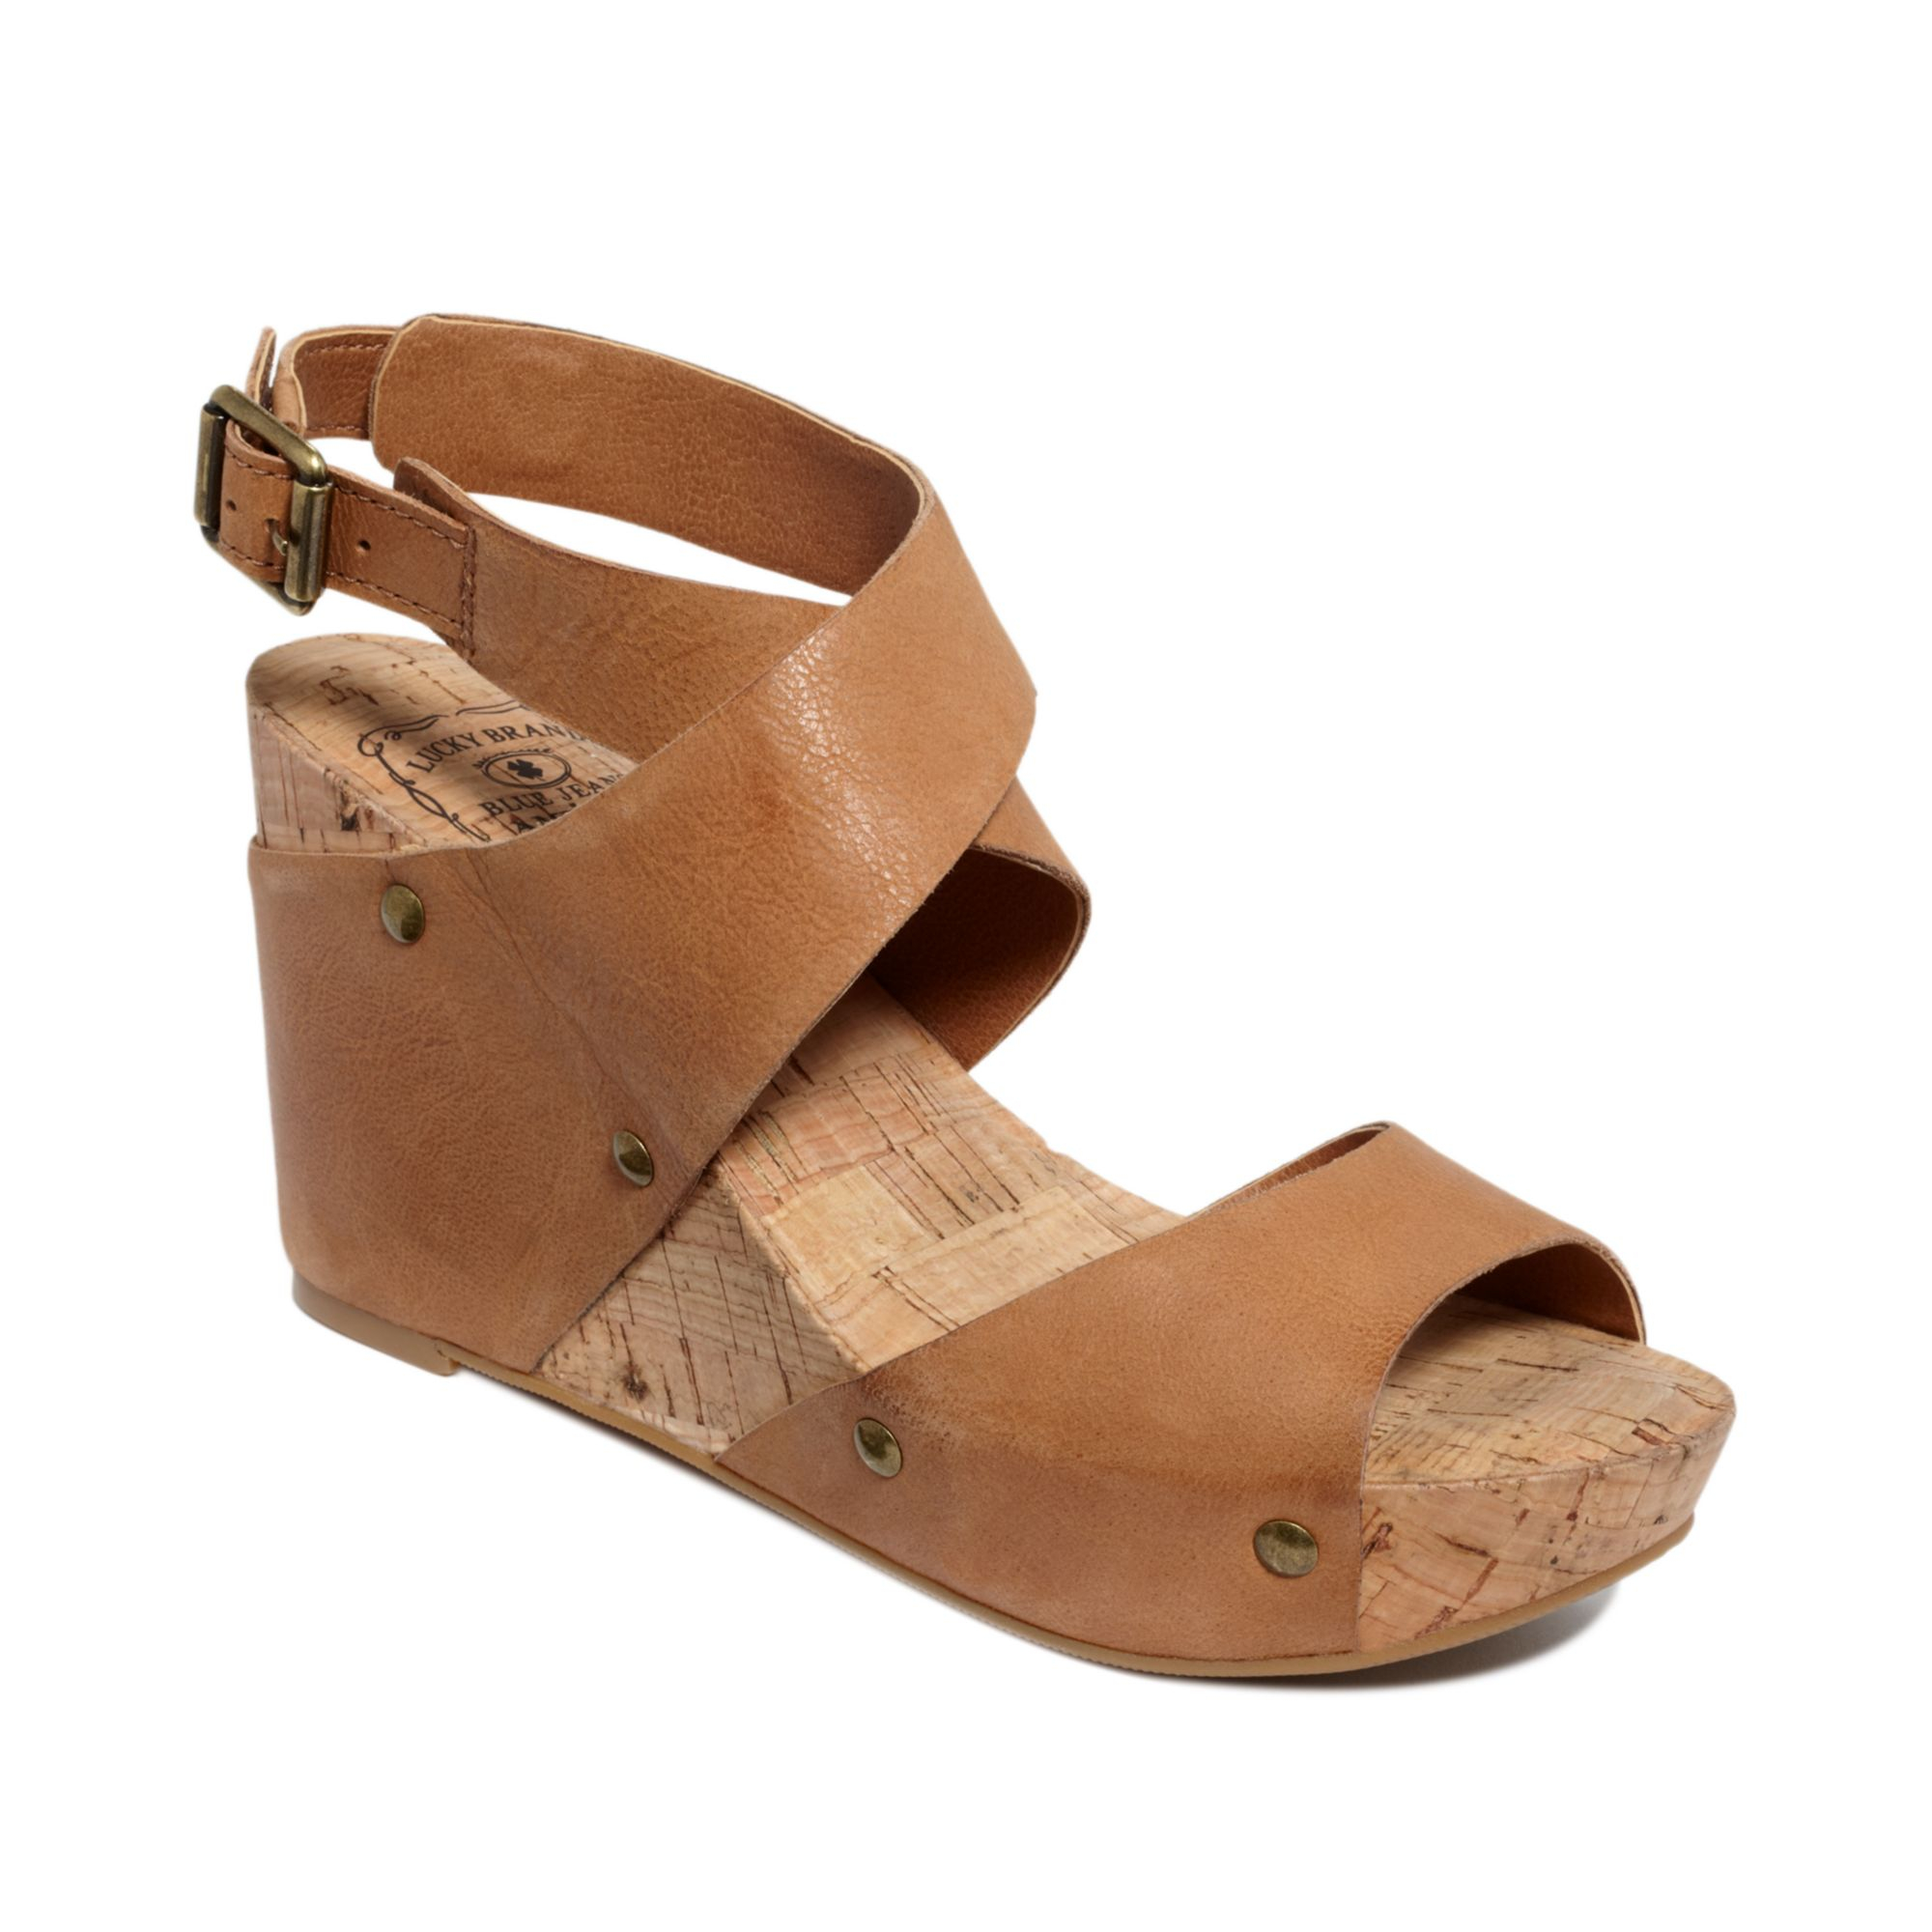 92e06f7ec995 Lyst - Lucky Brand Moran Wedge Sandals in Brown